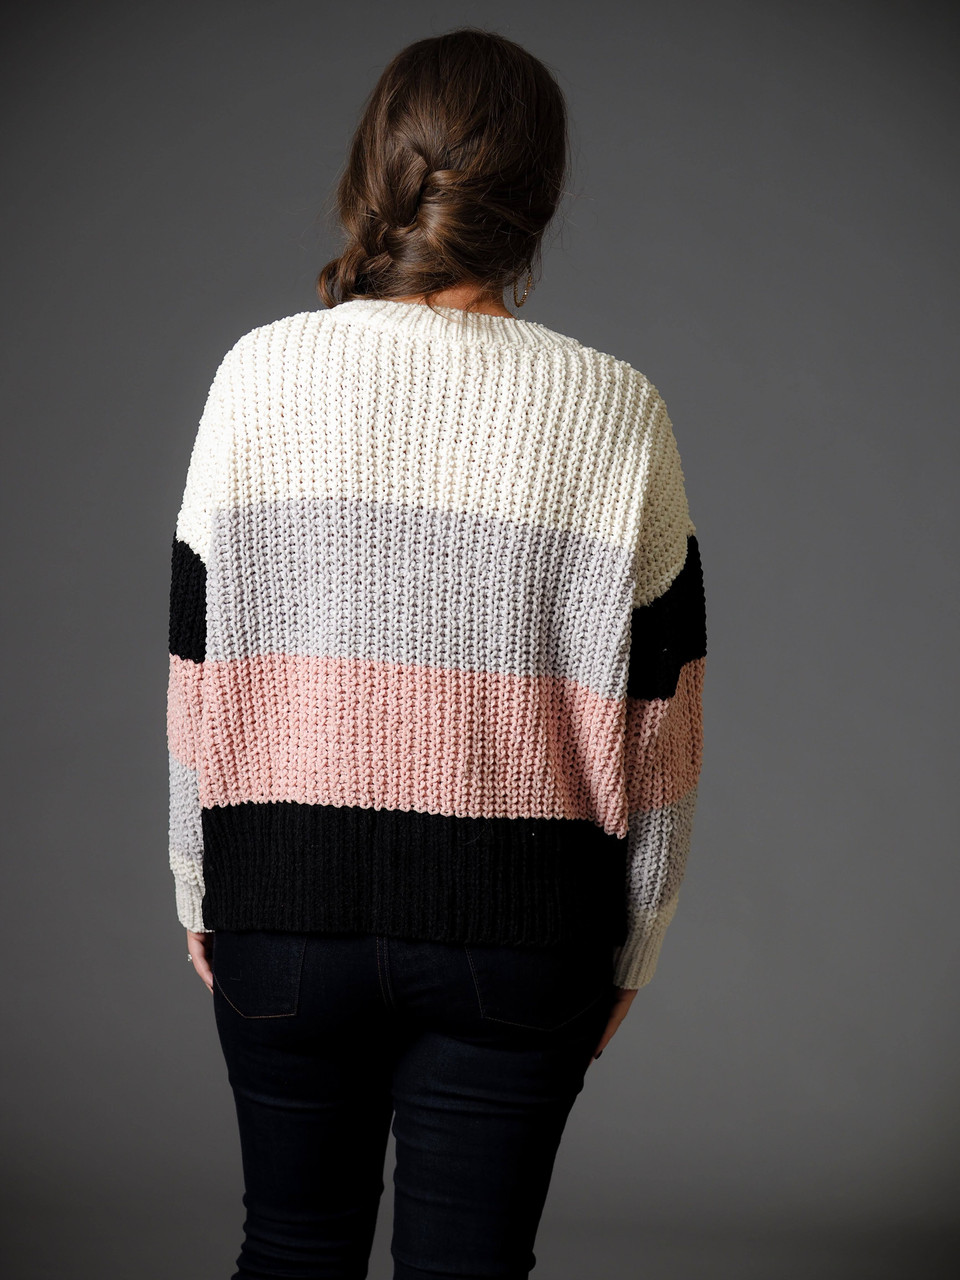 pink gray black and cream striped scoop neck sweater